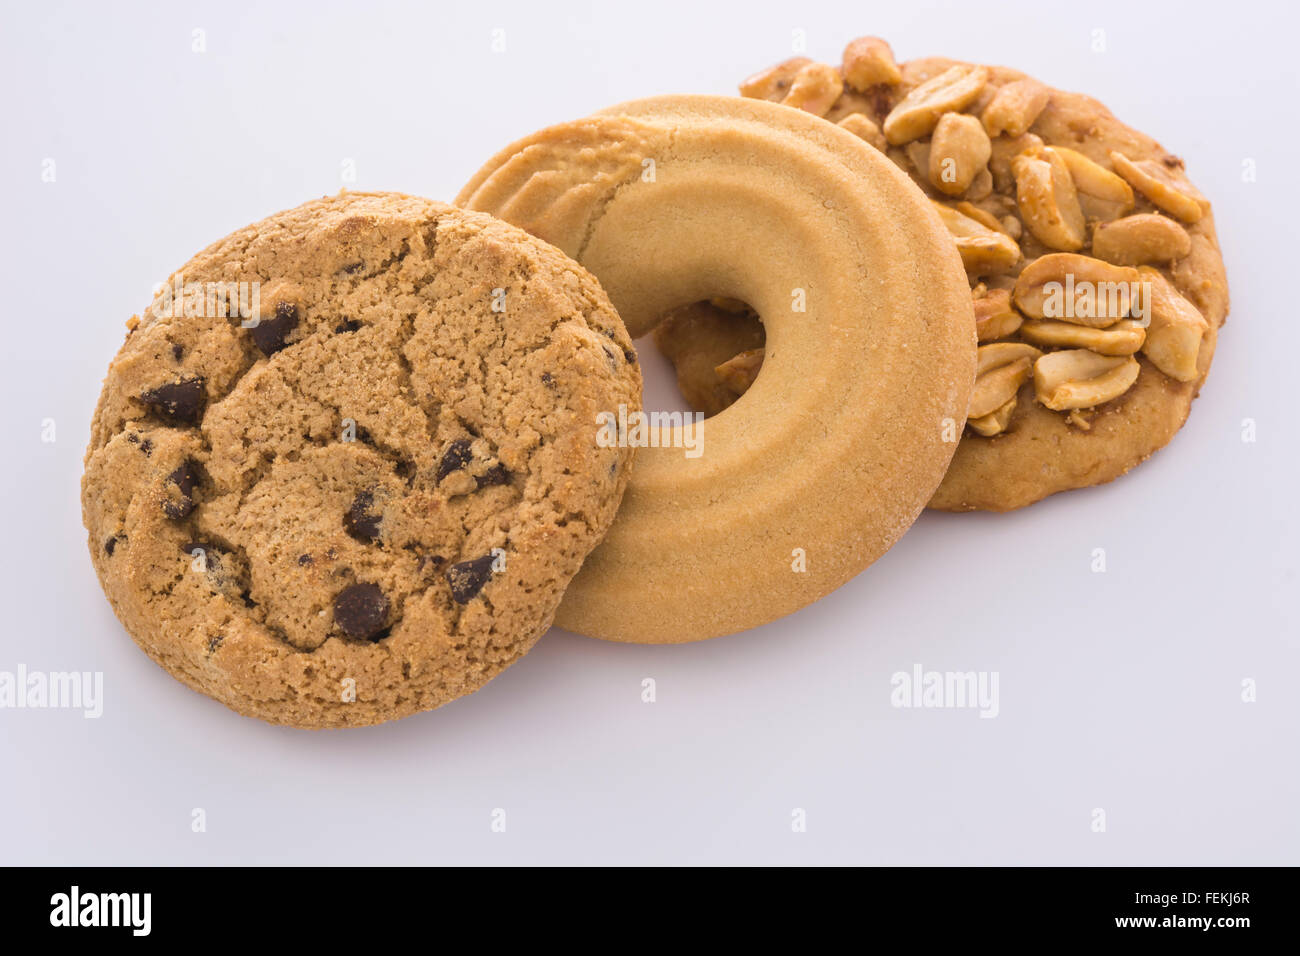 Biscuits / cookies on plain black, reflective, background - metaphor for  computer / browser / web cookies & - Stock Image